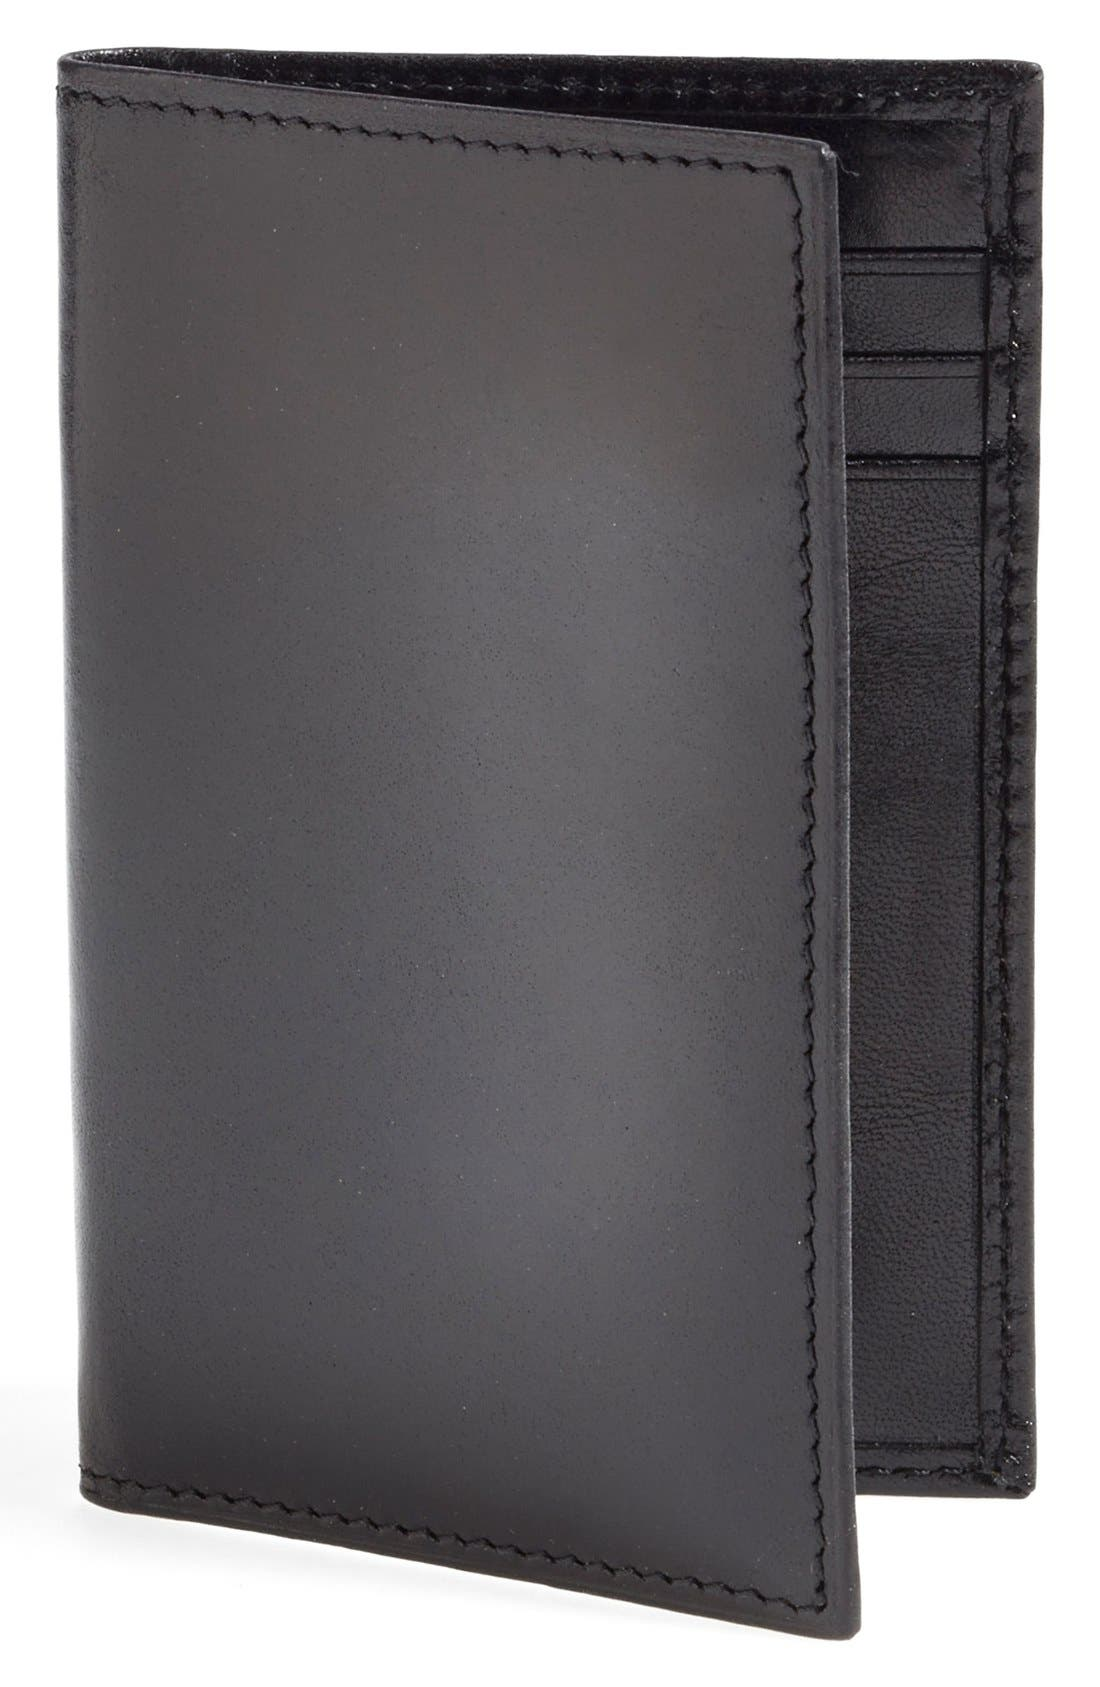 Main Image - Bosca 'Old Leather' Card Case